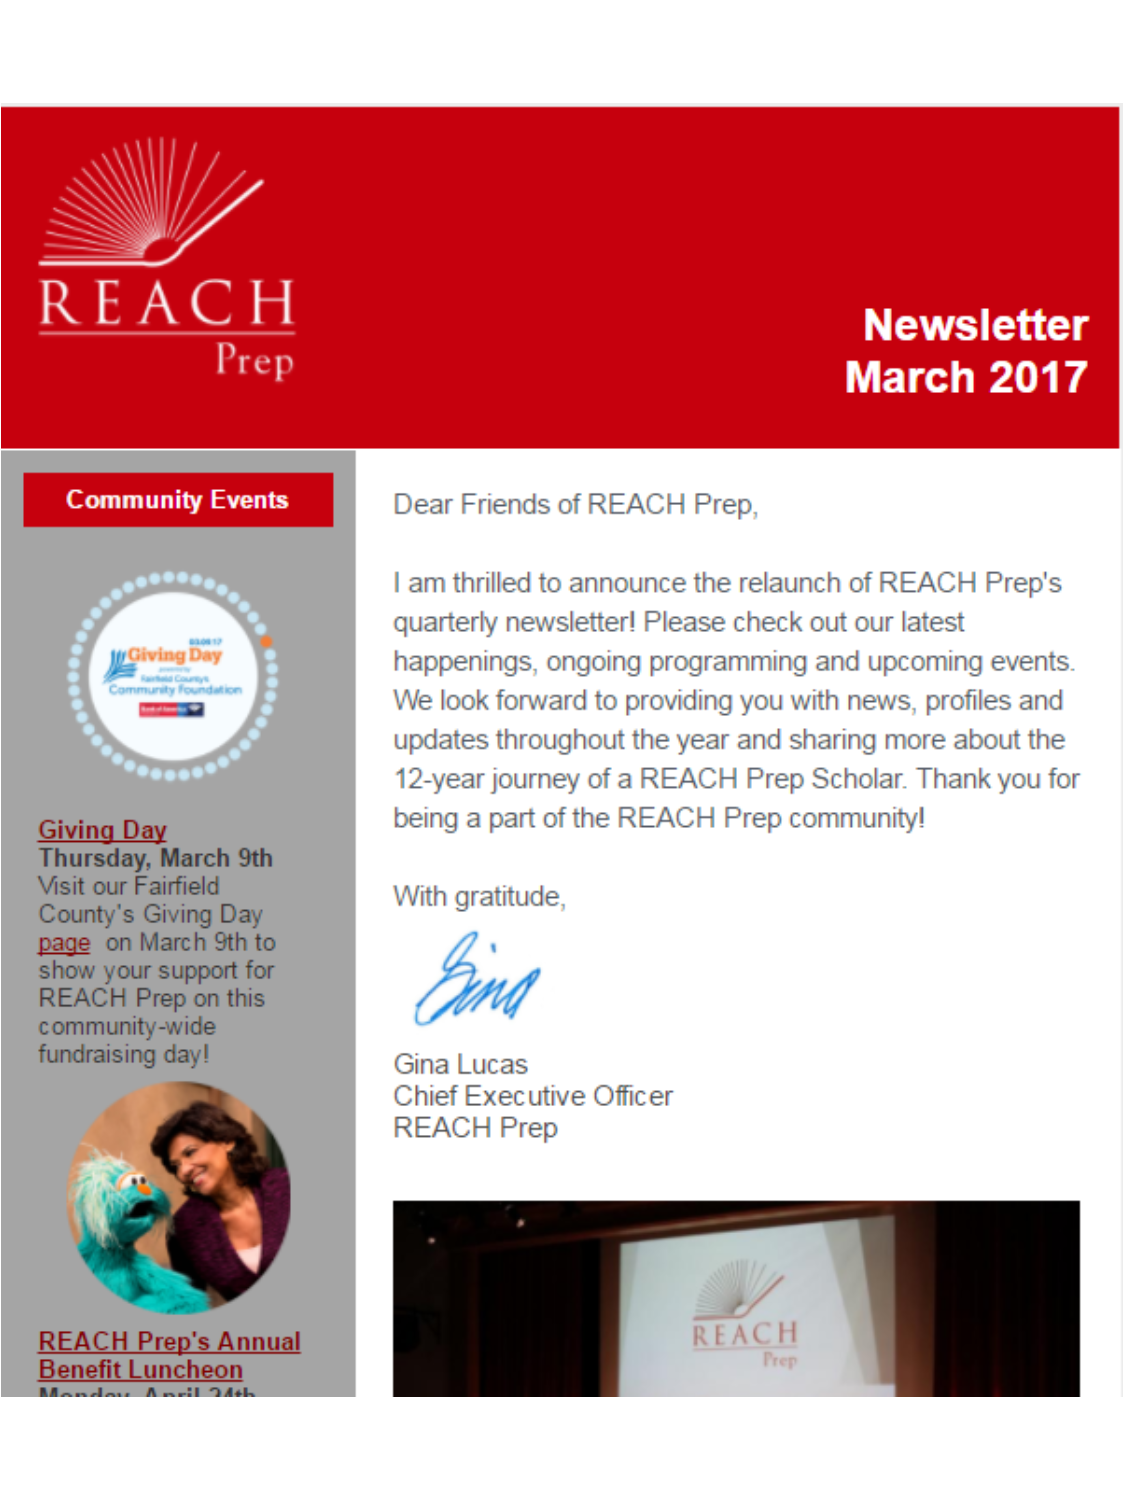 Newsletter: March 2017